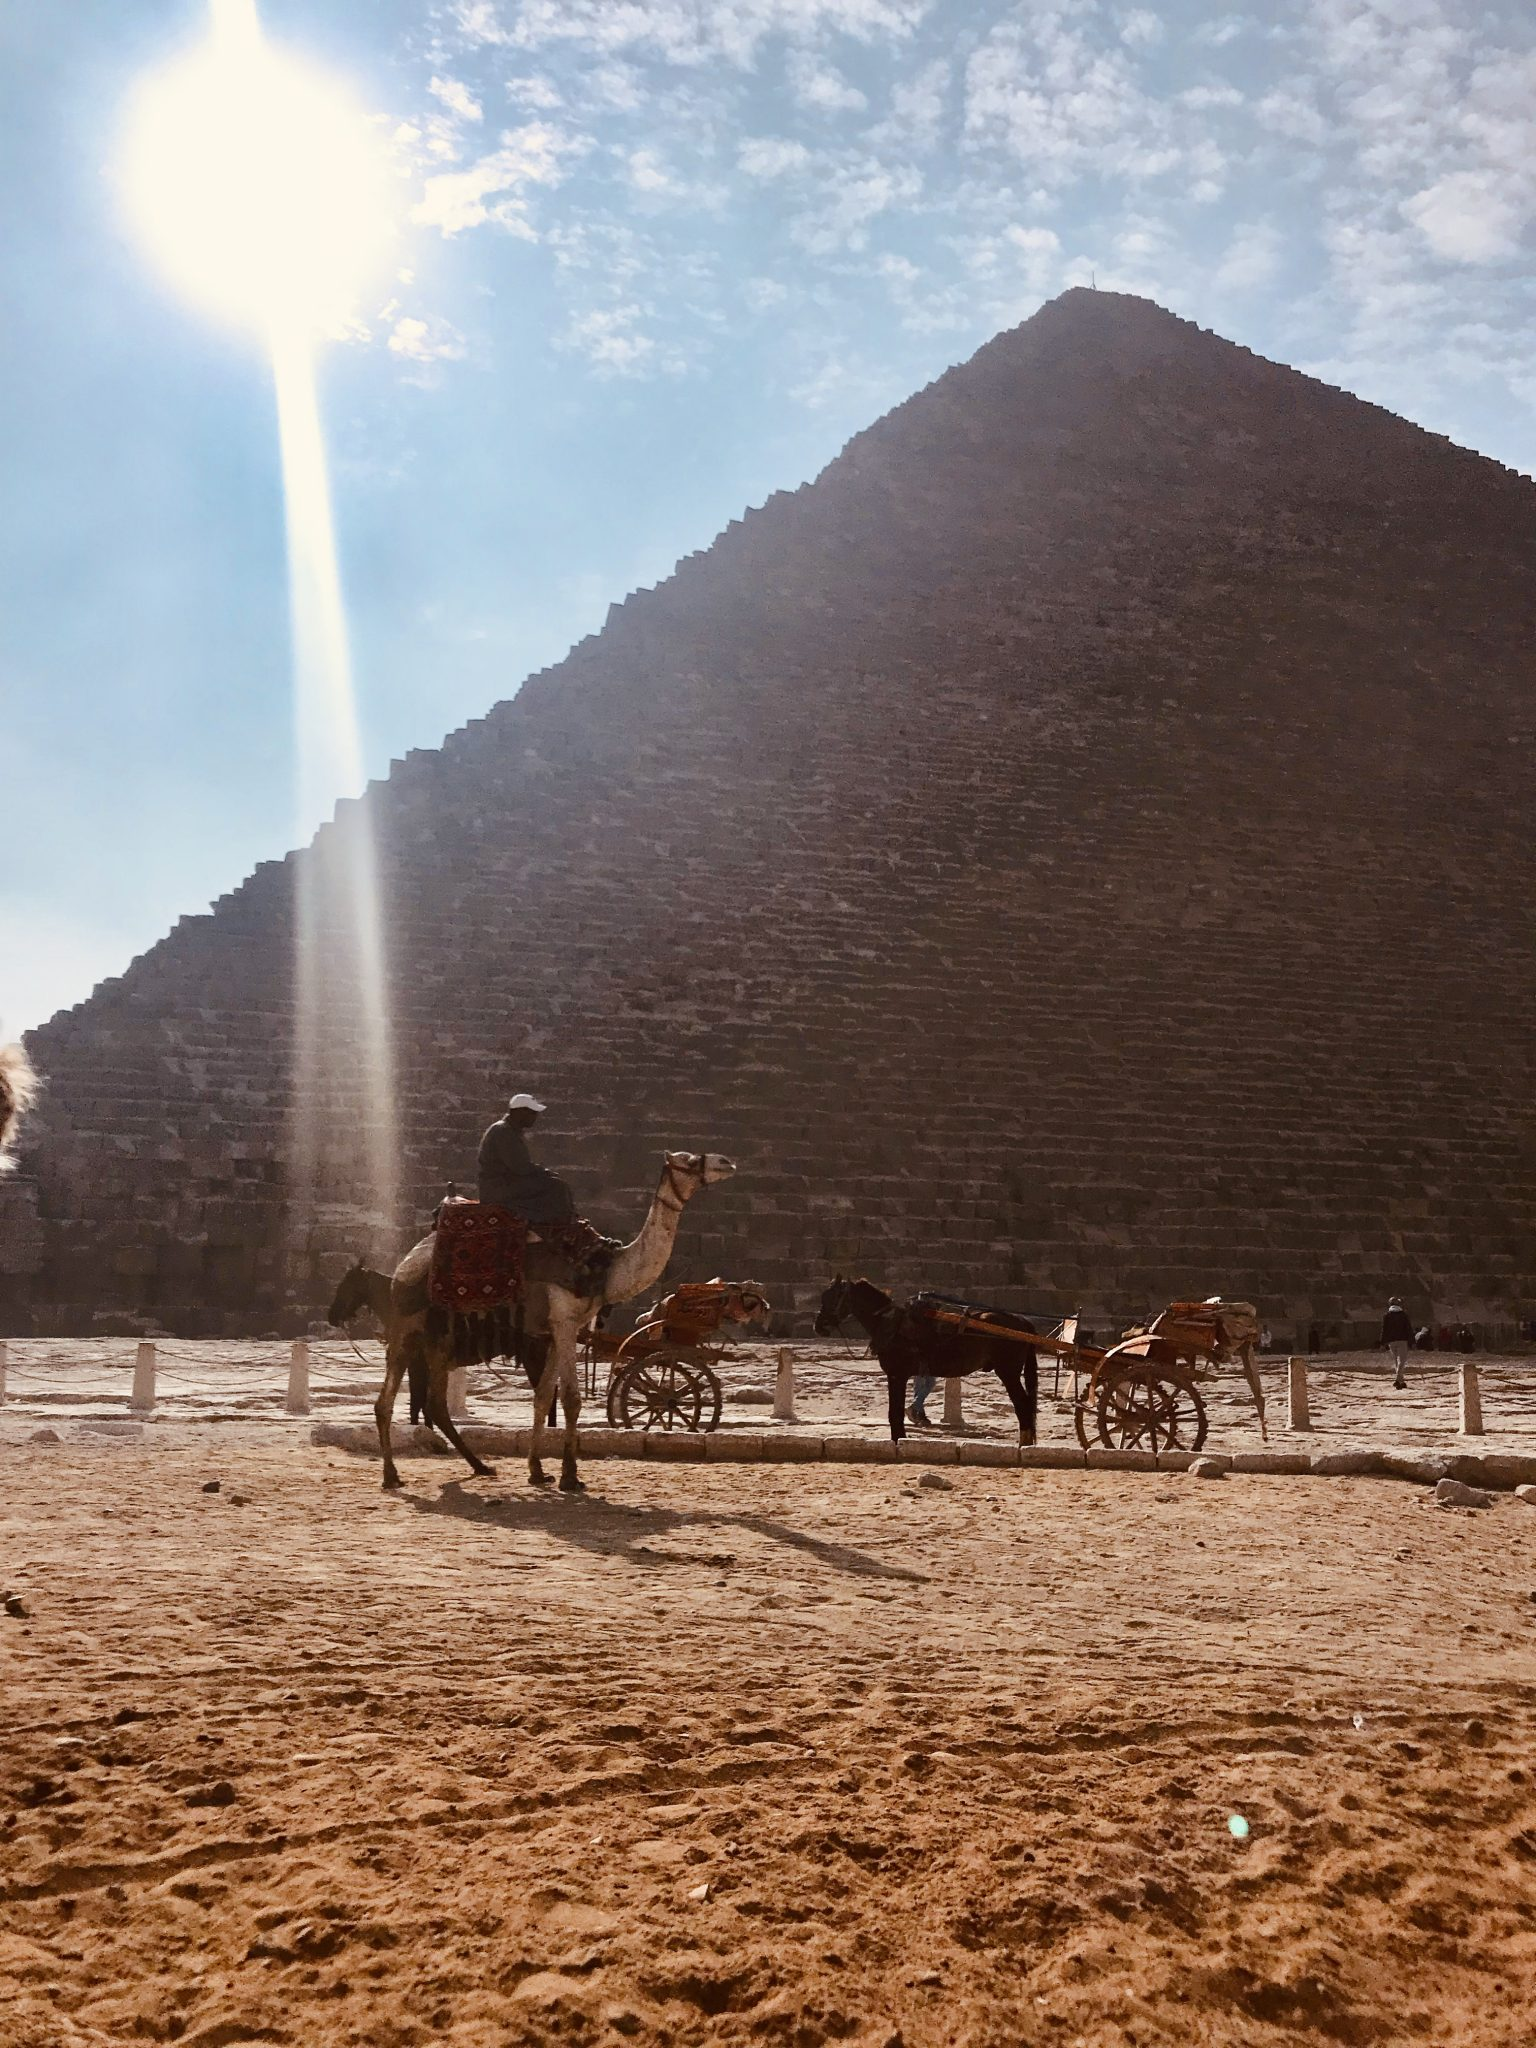 pyramids of giza in cairo egypt